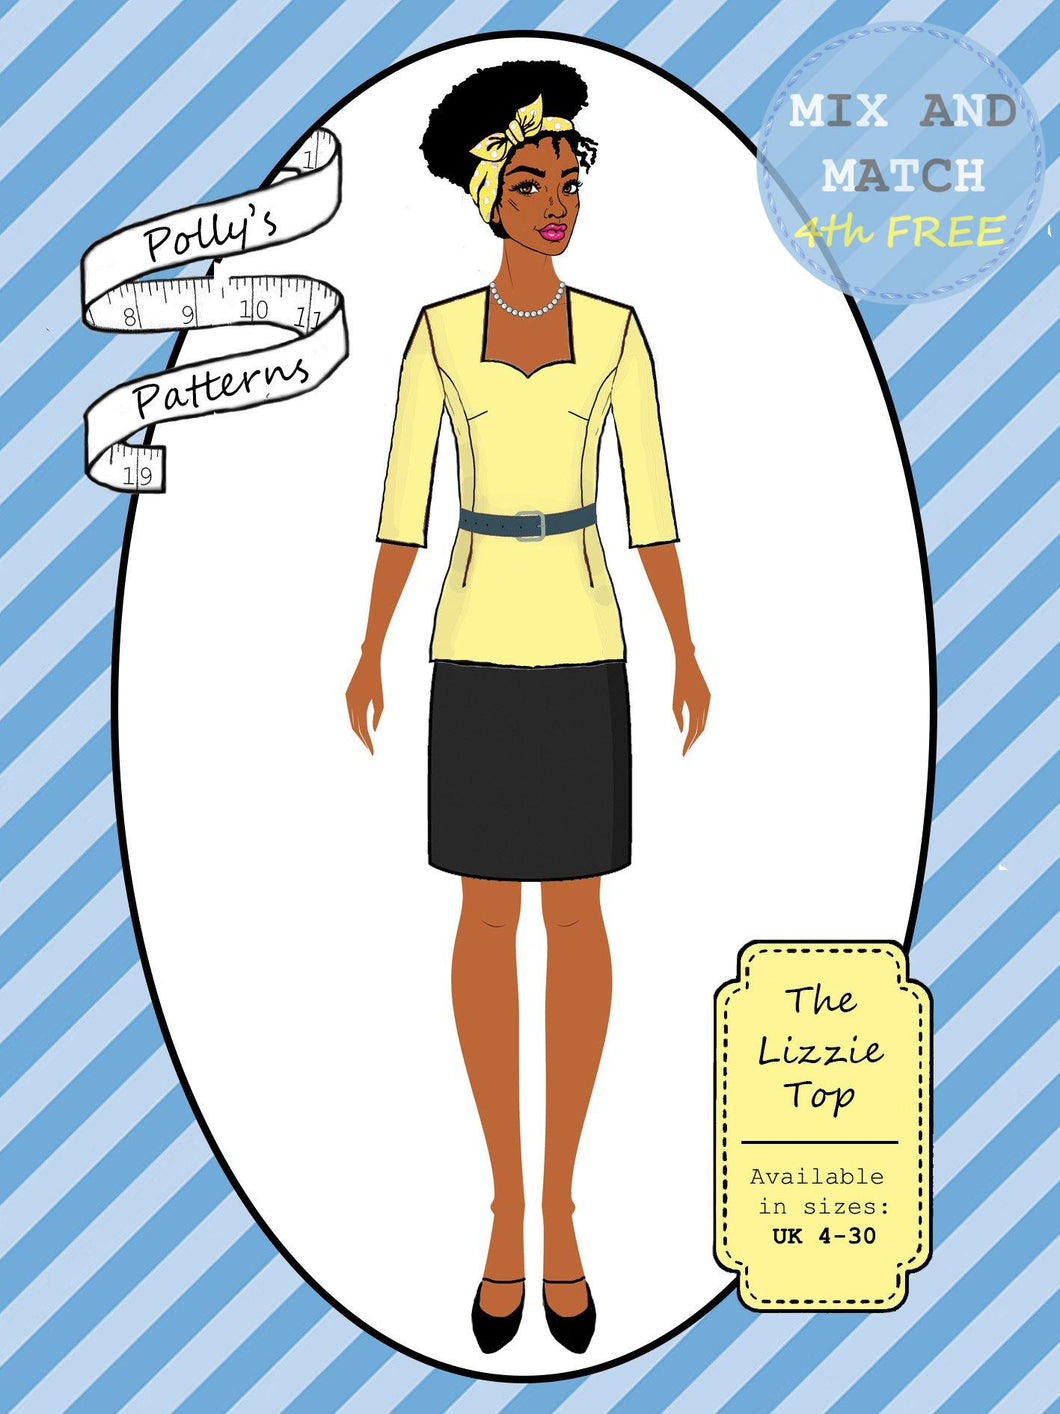 Polly's patterns - The Lizzie Top - Pattern Shop